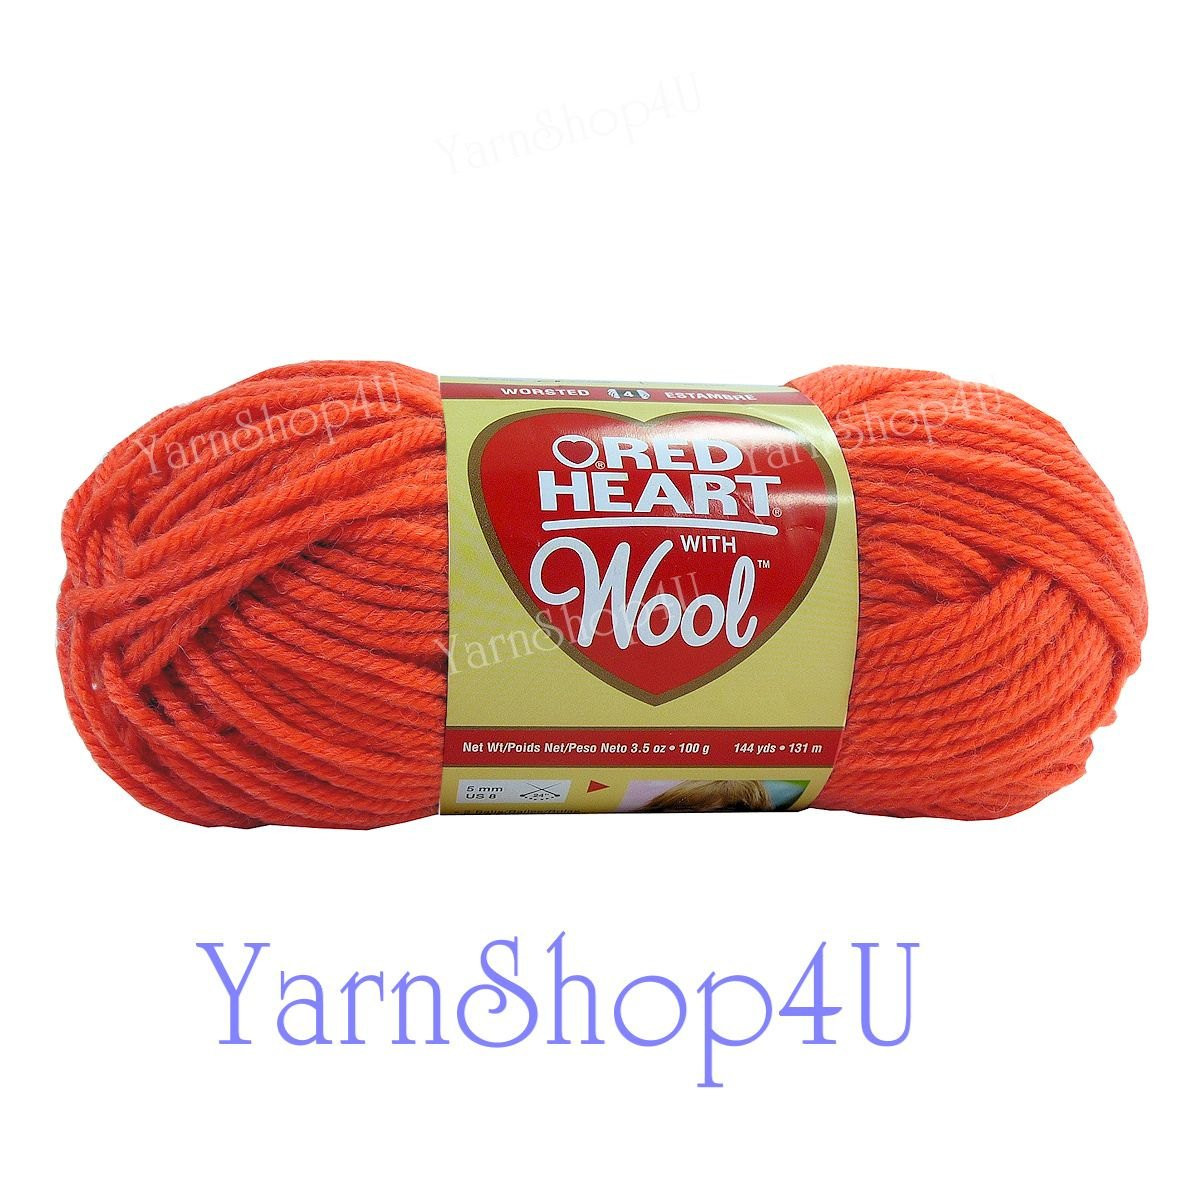 Red Heart Yarn Sale Fresh Sale Tangerine 3 5oz Red Heart with Wool orange Yarn Of Awesome 47 Models Red Heart Yarn Sale